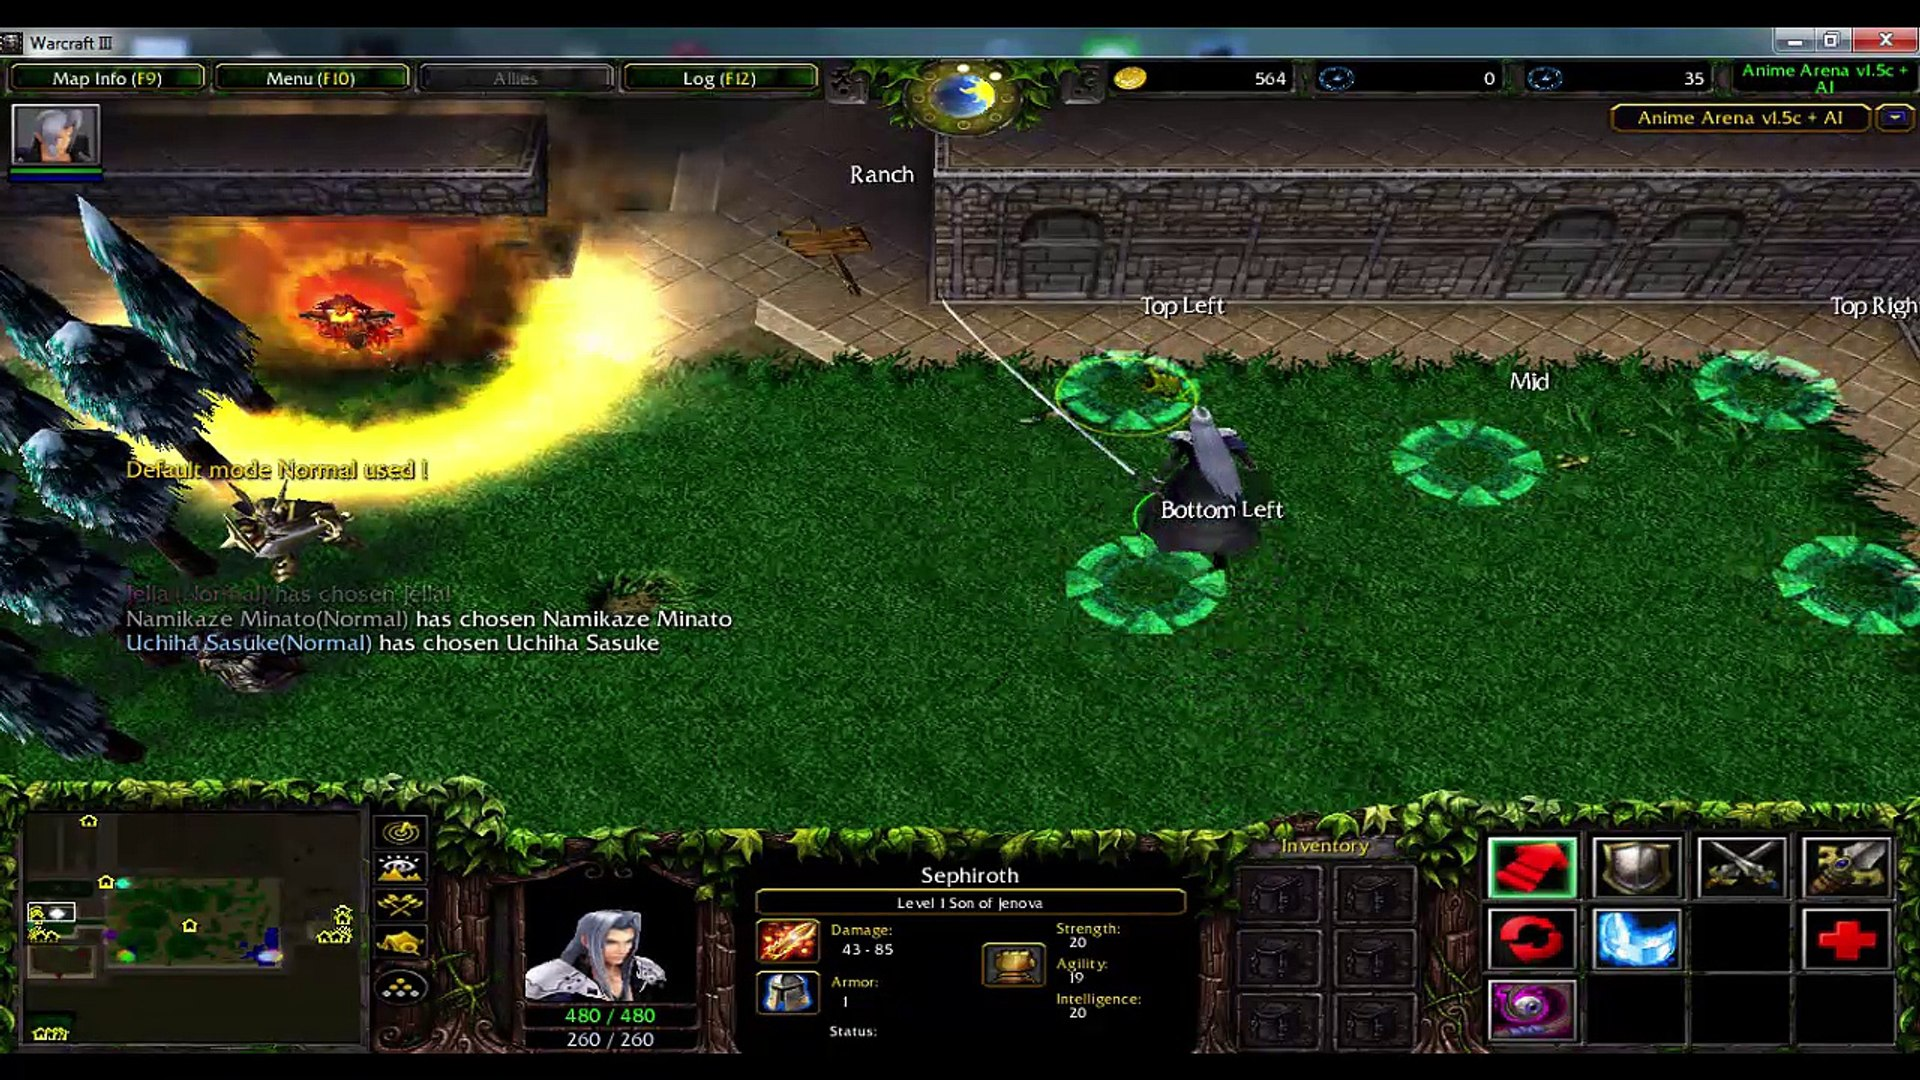 Anime Arena V1 5c With Ai Warcraft 3 Map Video Dailymotion